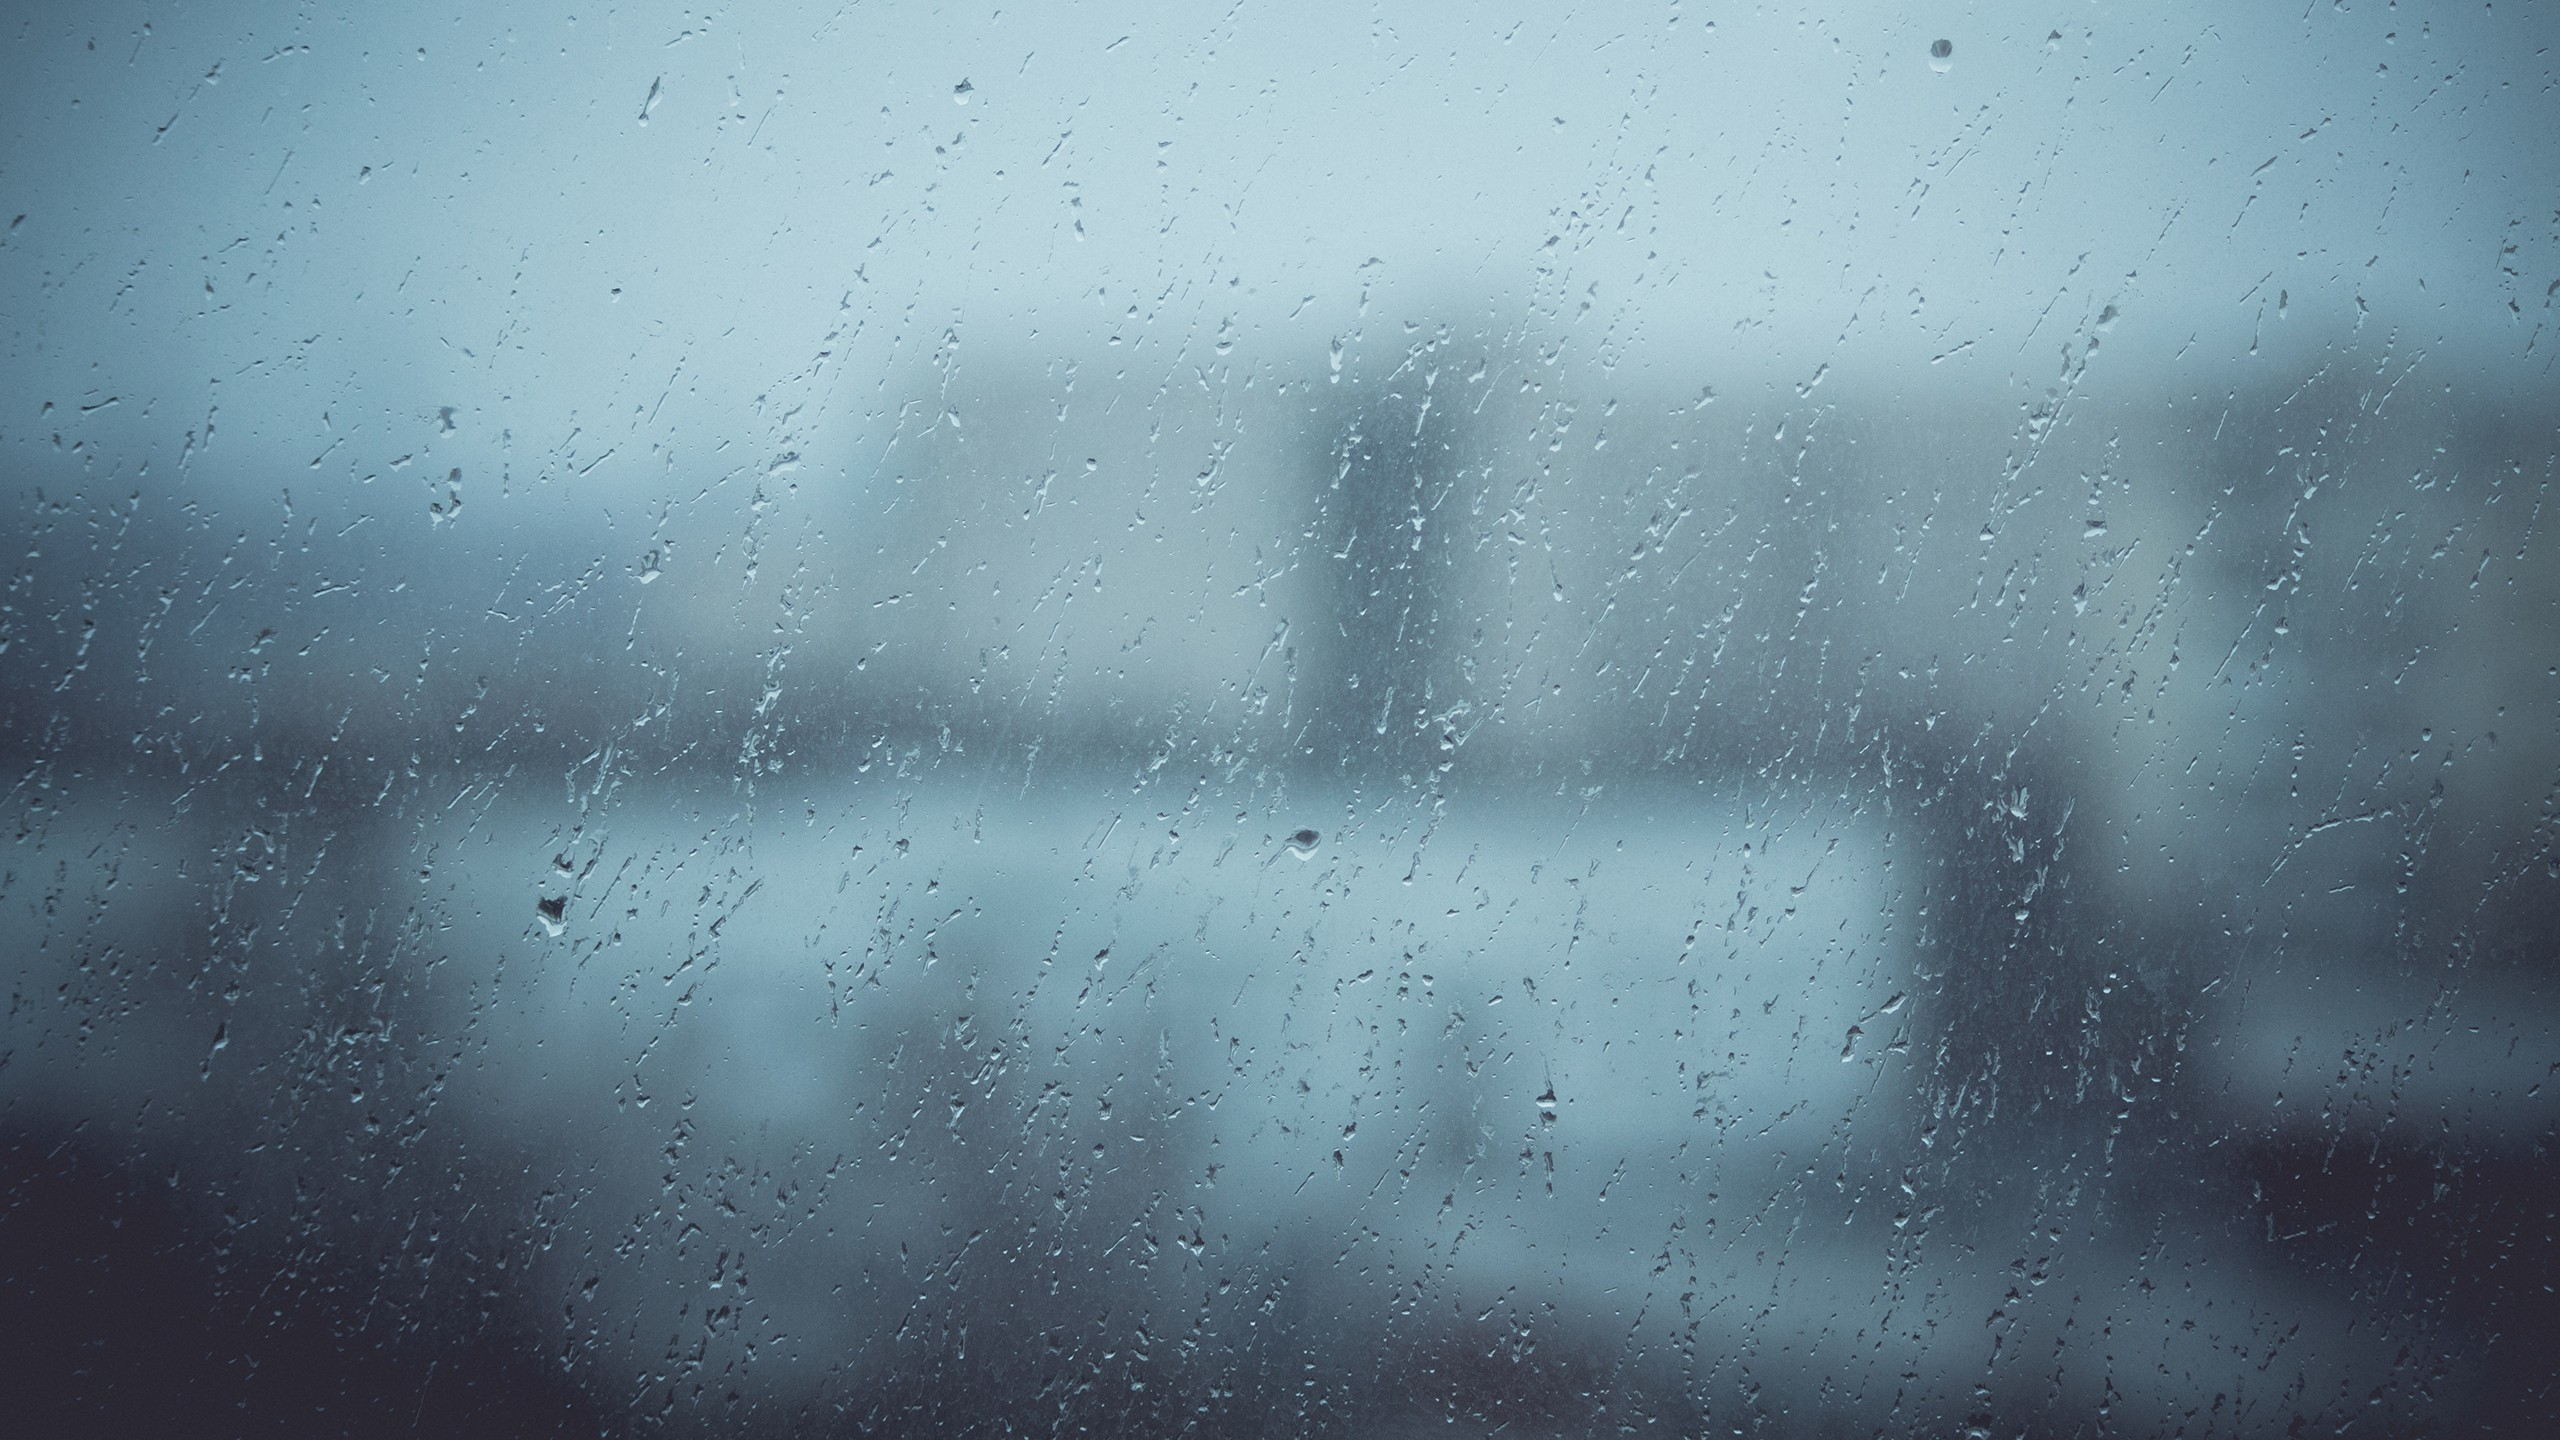 Rainy Day. How to set wallpaper on your desktop? Click the  download link from above and set the wallpaper on the desktop from your OS.